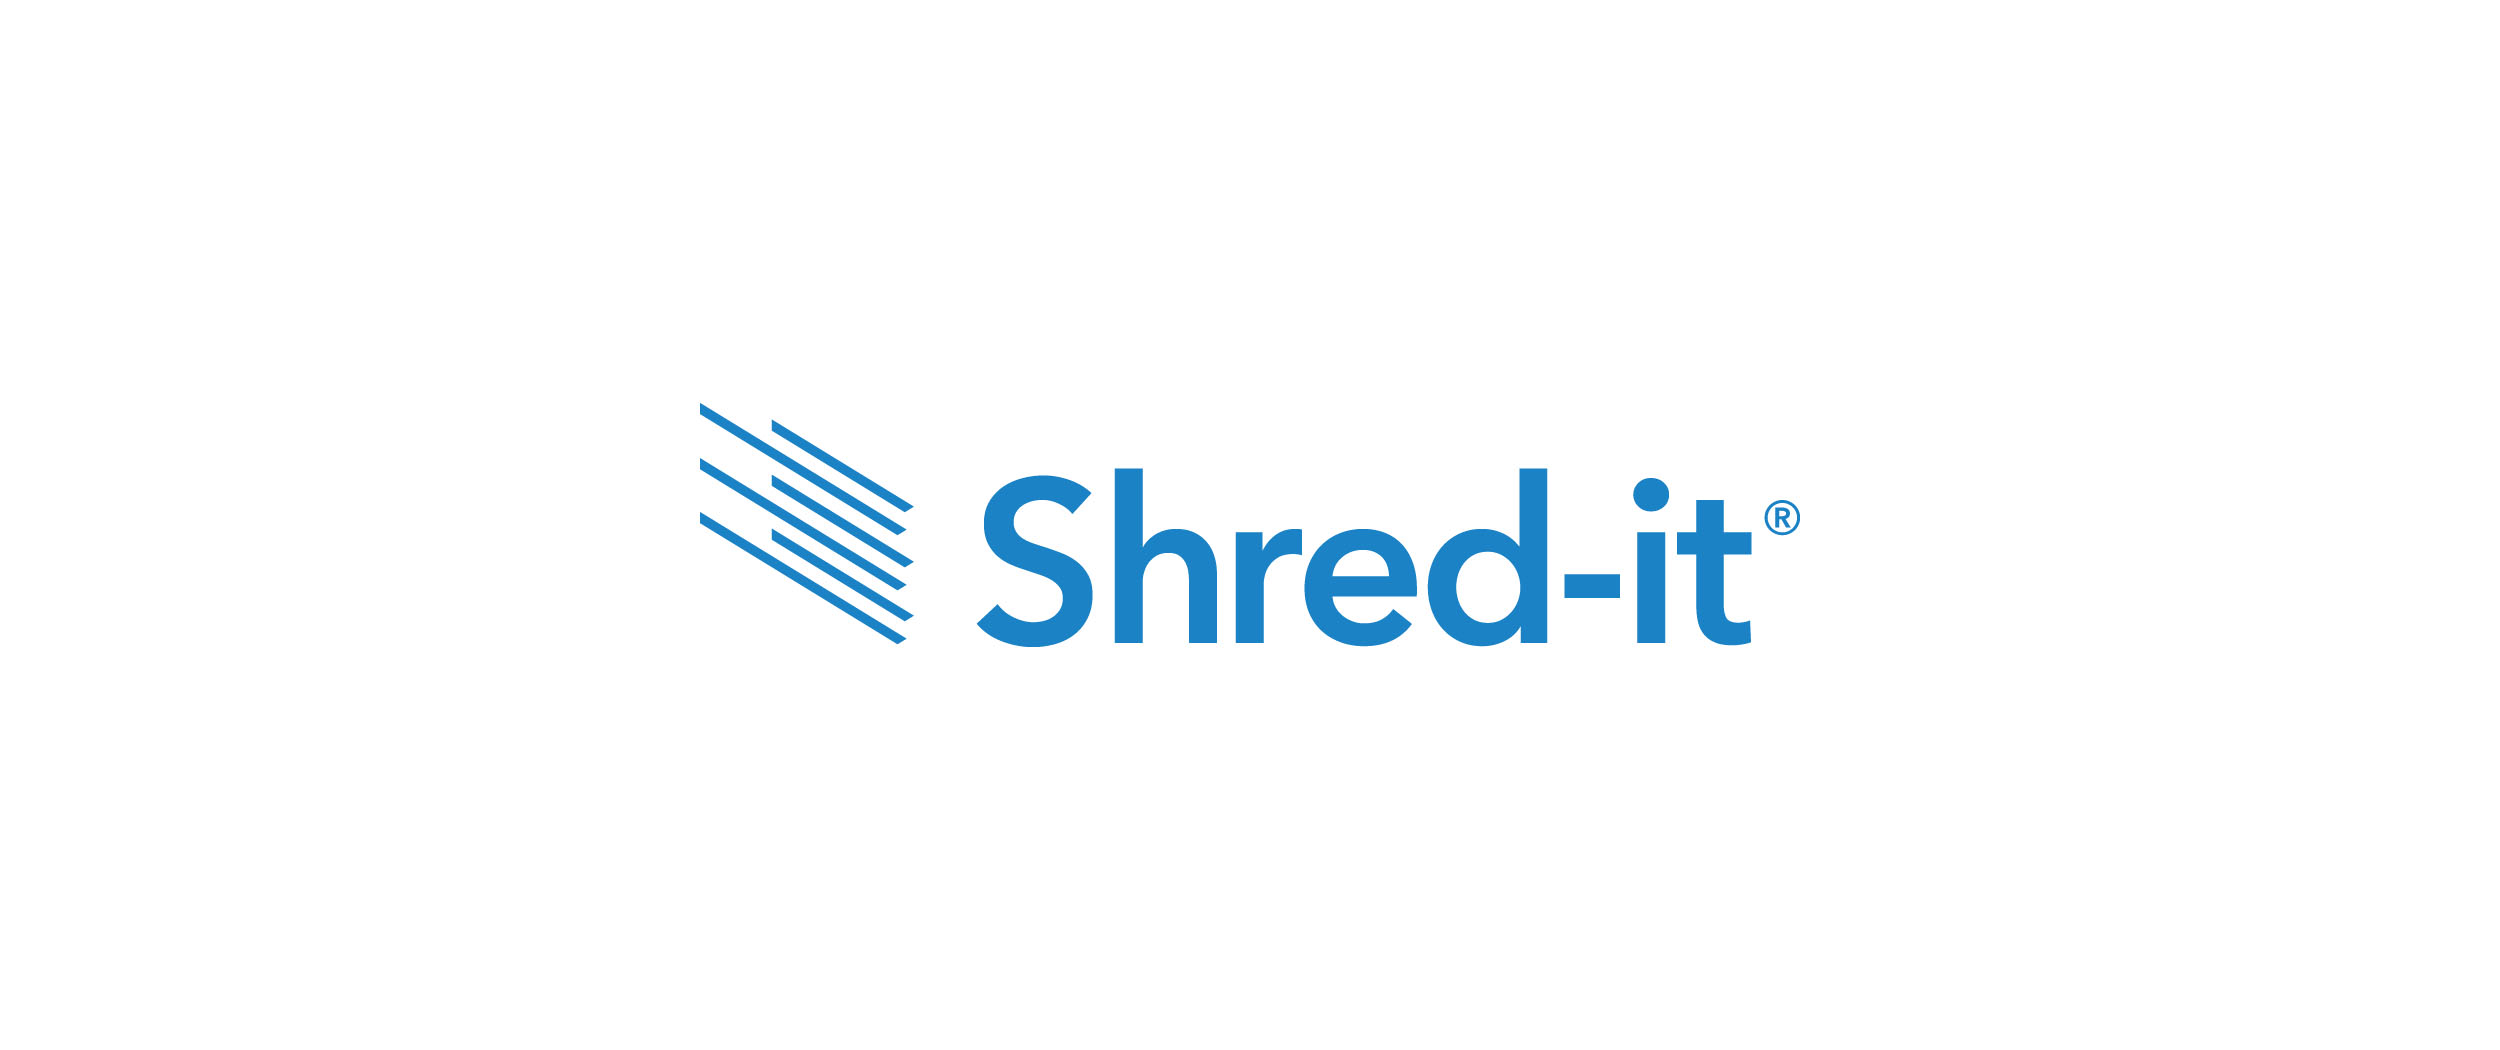 Shred-it Logo_2017.jpg